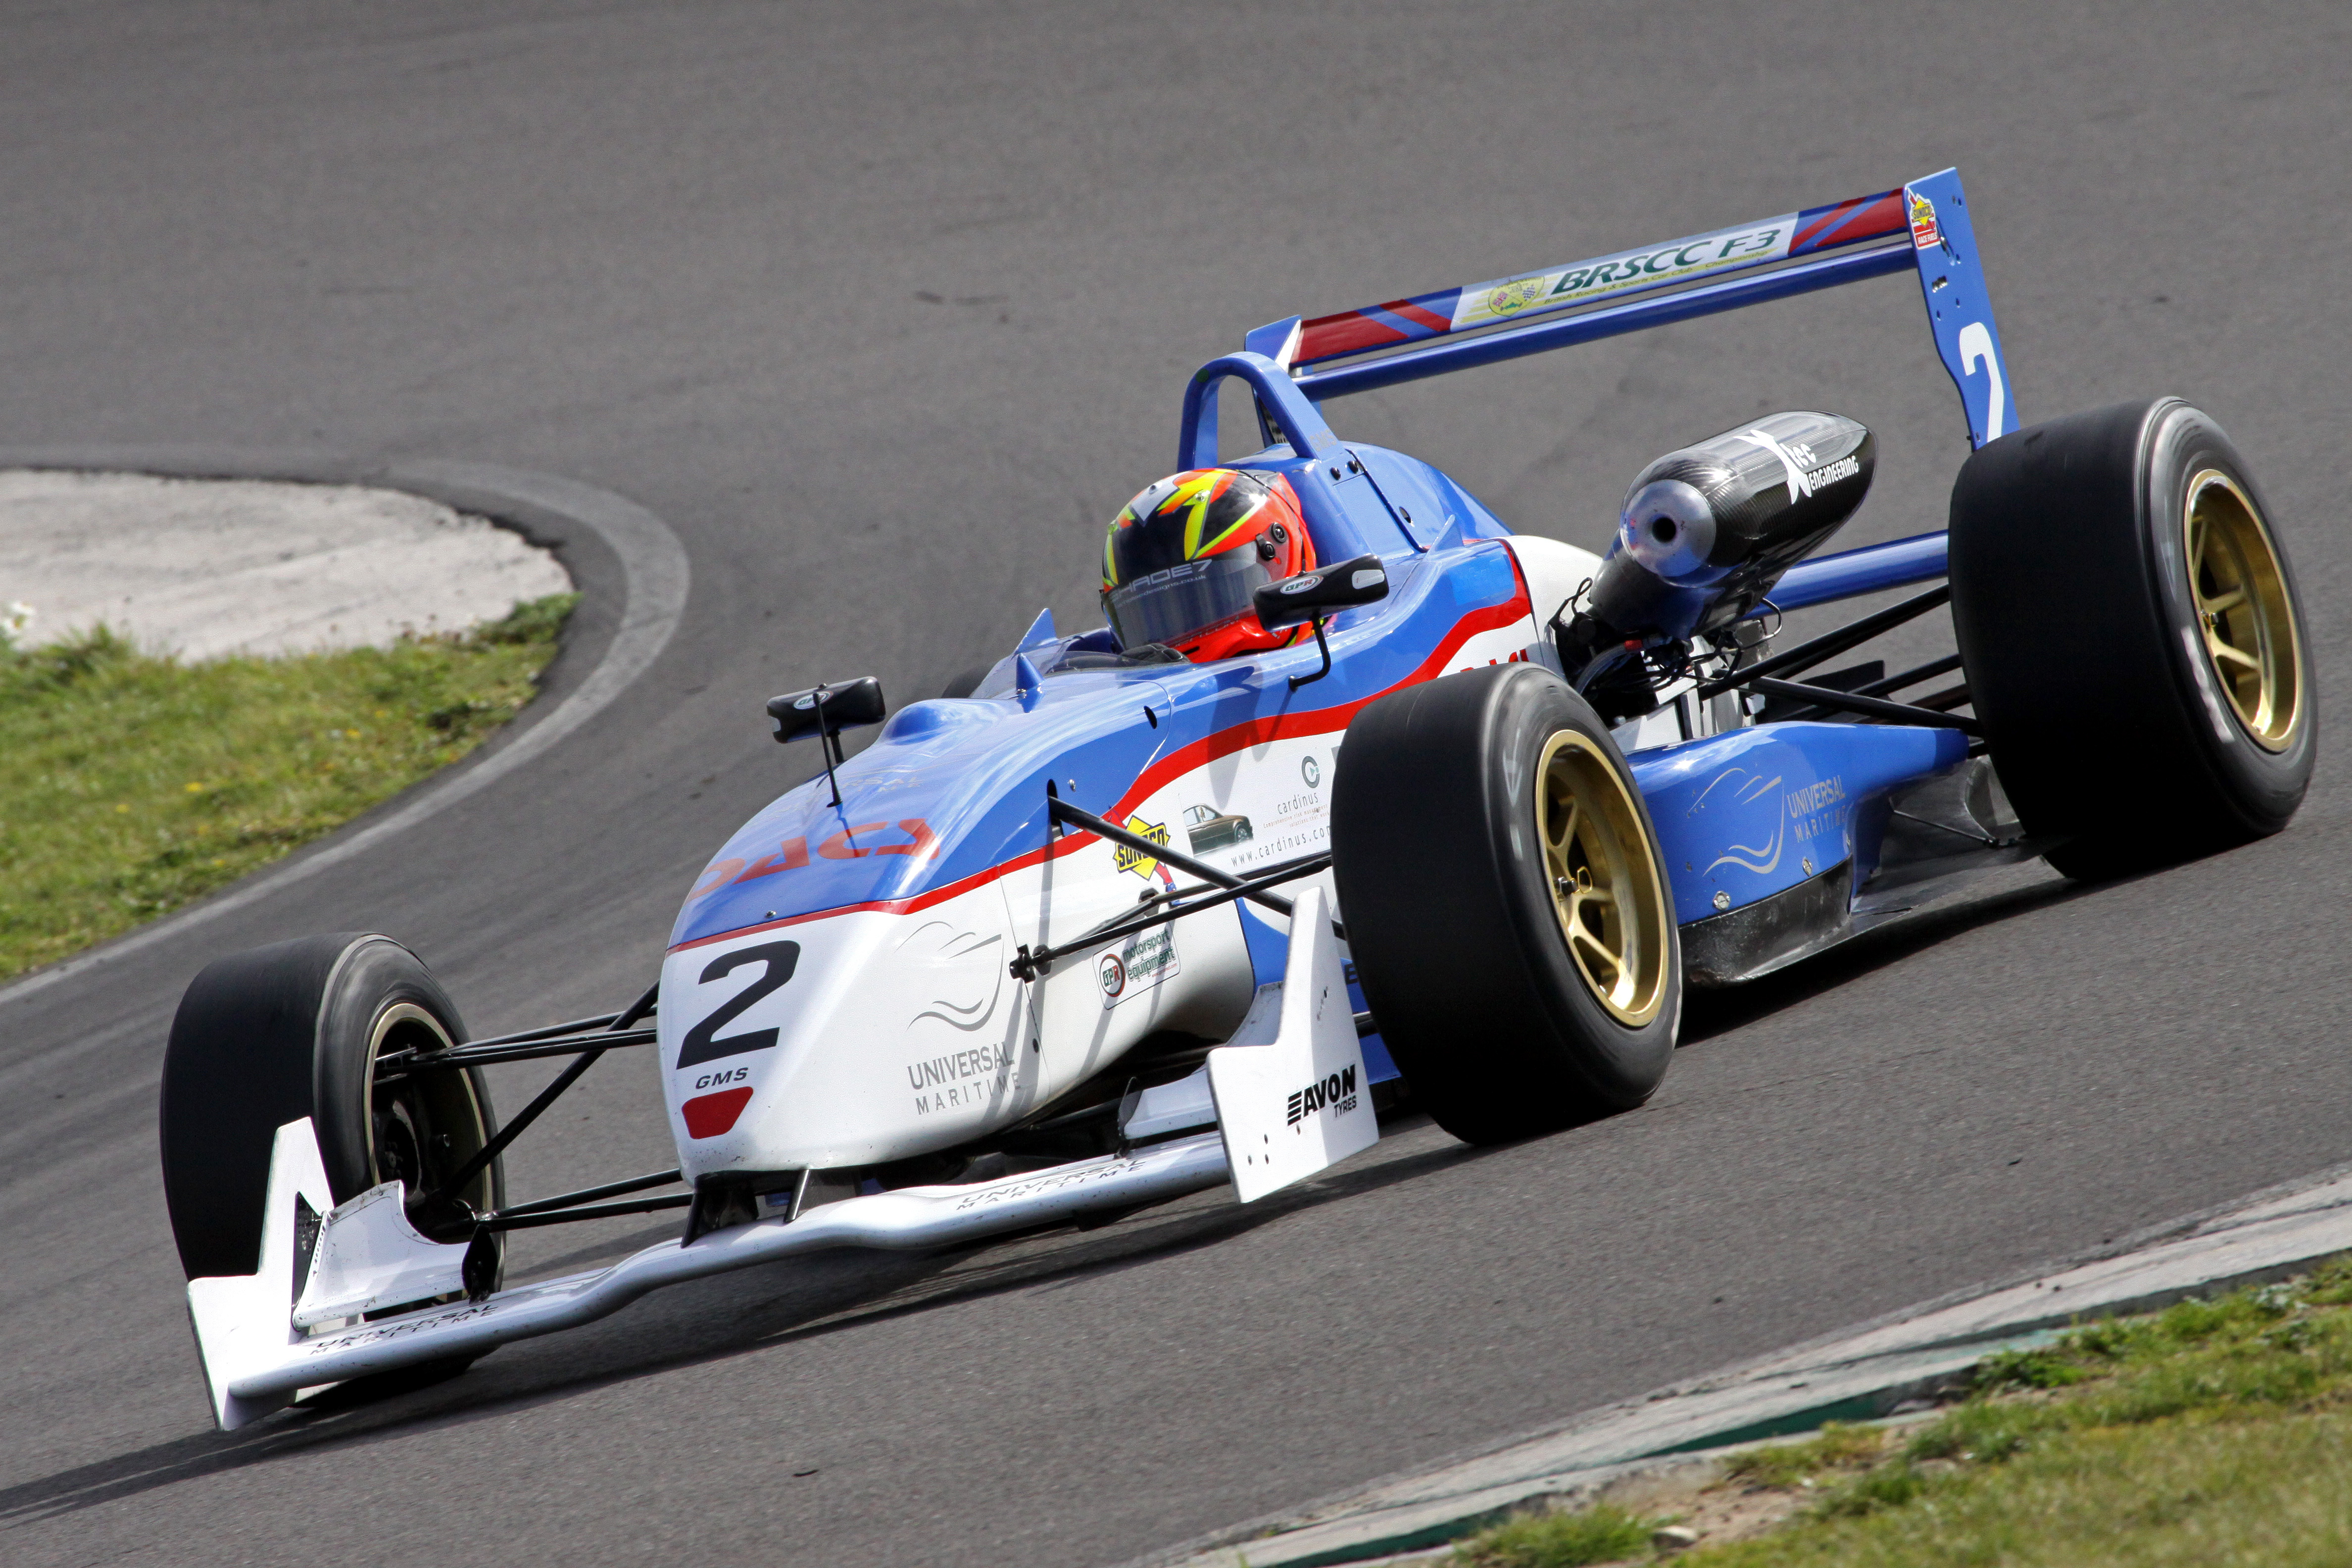 MSV F3 CUP 2 RACES AT ANGLESEY - OUTRIGHT LAP RECORD FOR ANGLESEY CIRCUIT